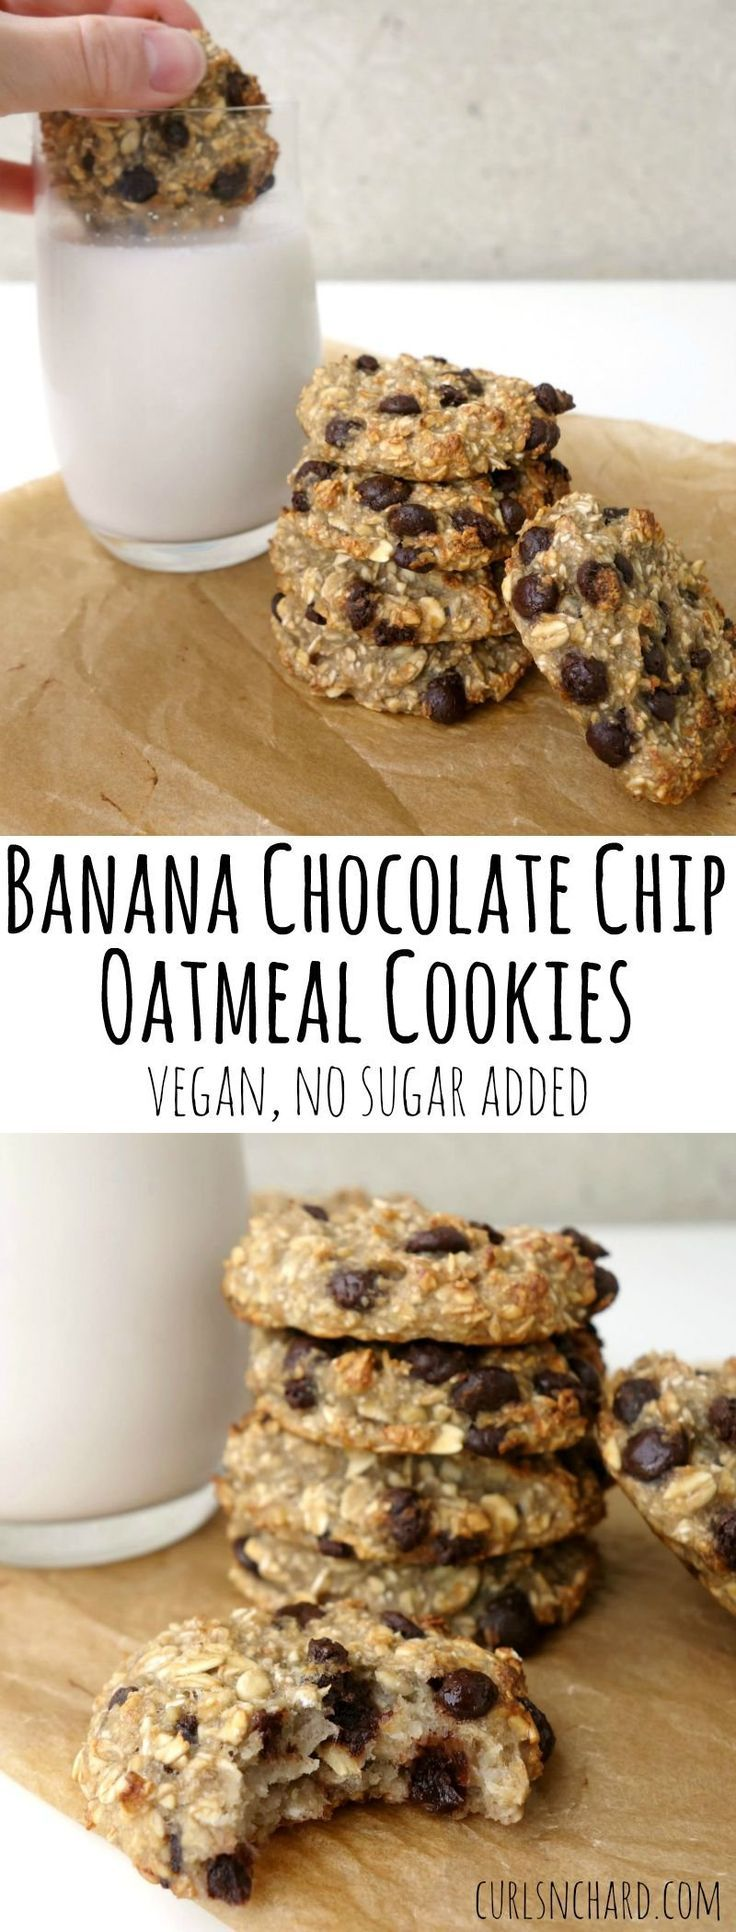 Banana Chocolate Chip Oatmeal Cookies recipe - 3 ingredients, no added sugar and... -